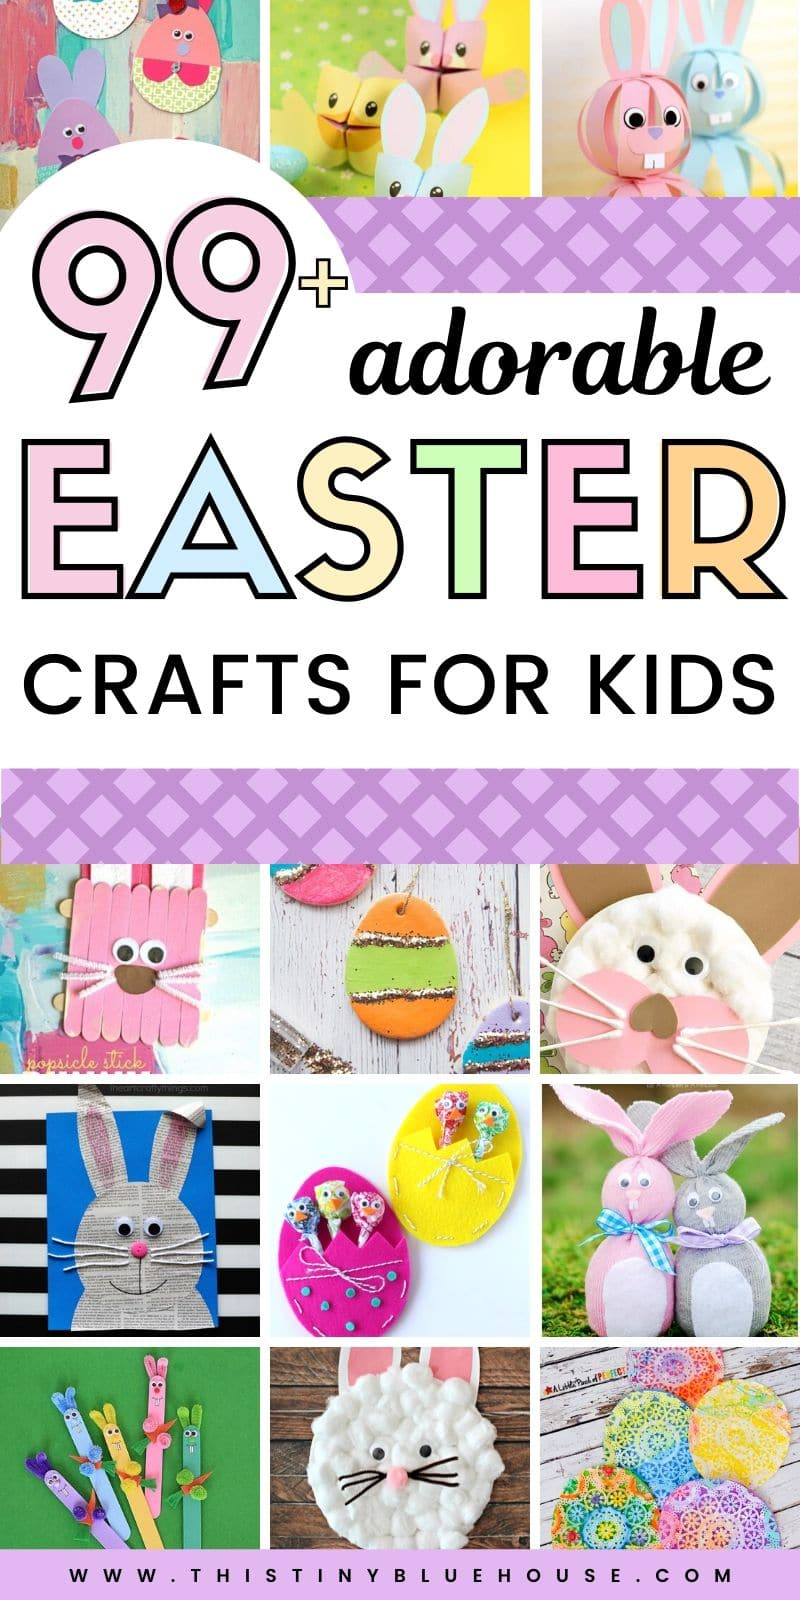 Get the kids excited about Easter with these 100+ adorable Easter Craft ideas for kids. #eastercrafts #eastercraftsforkids #easyeastercrafts #cuteeastercrafts #adorableeastercrafts #eastercraftsforyoungkids